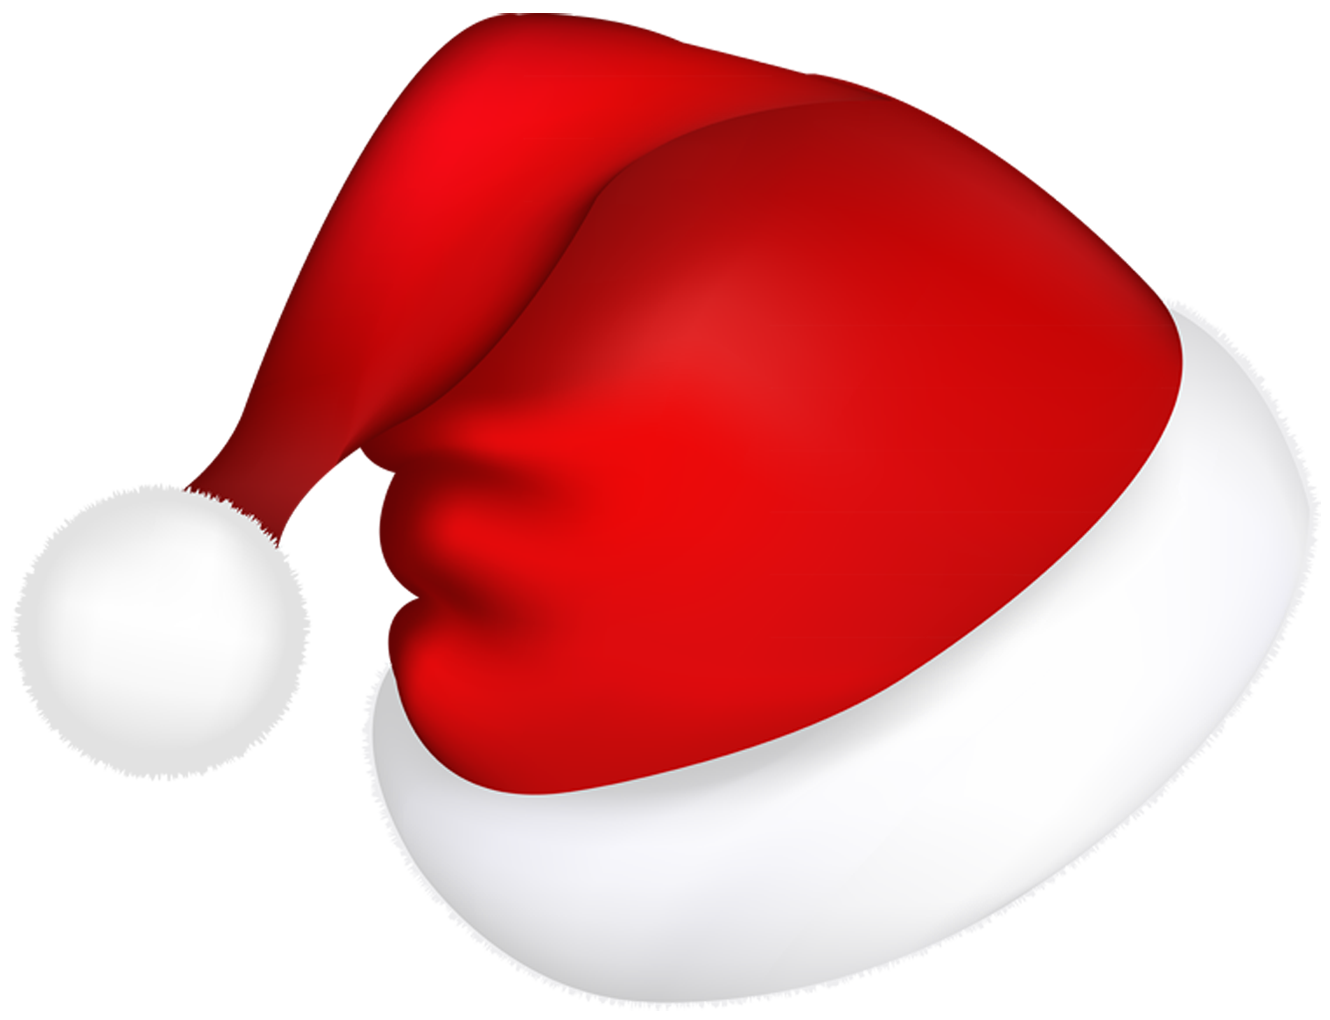 Santa hat png. Large red picture